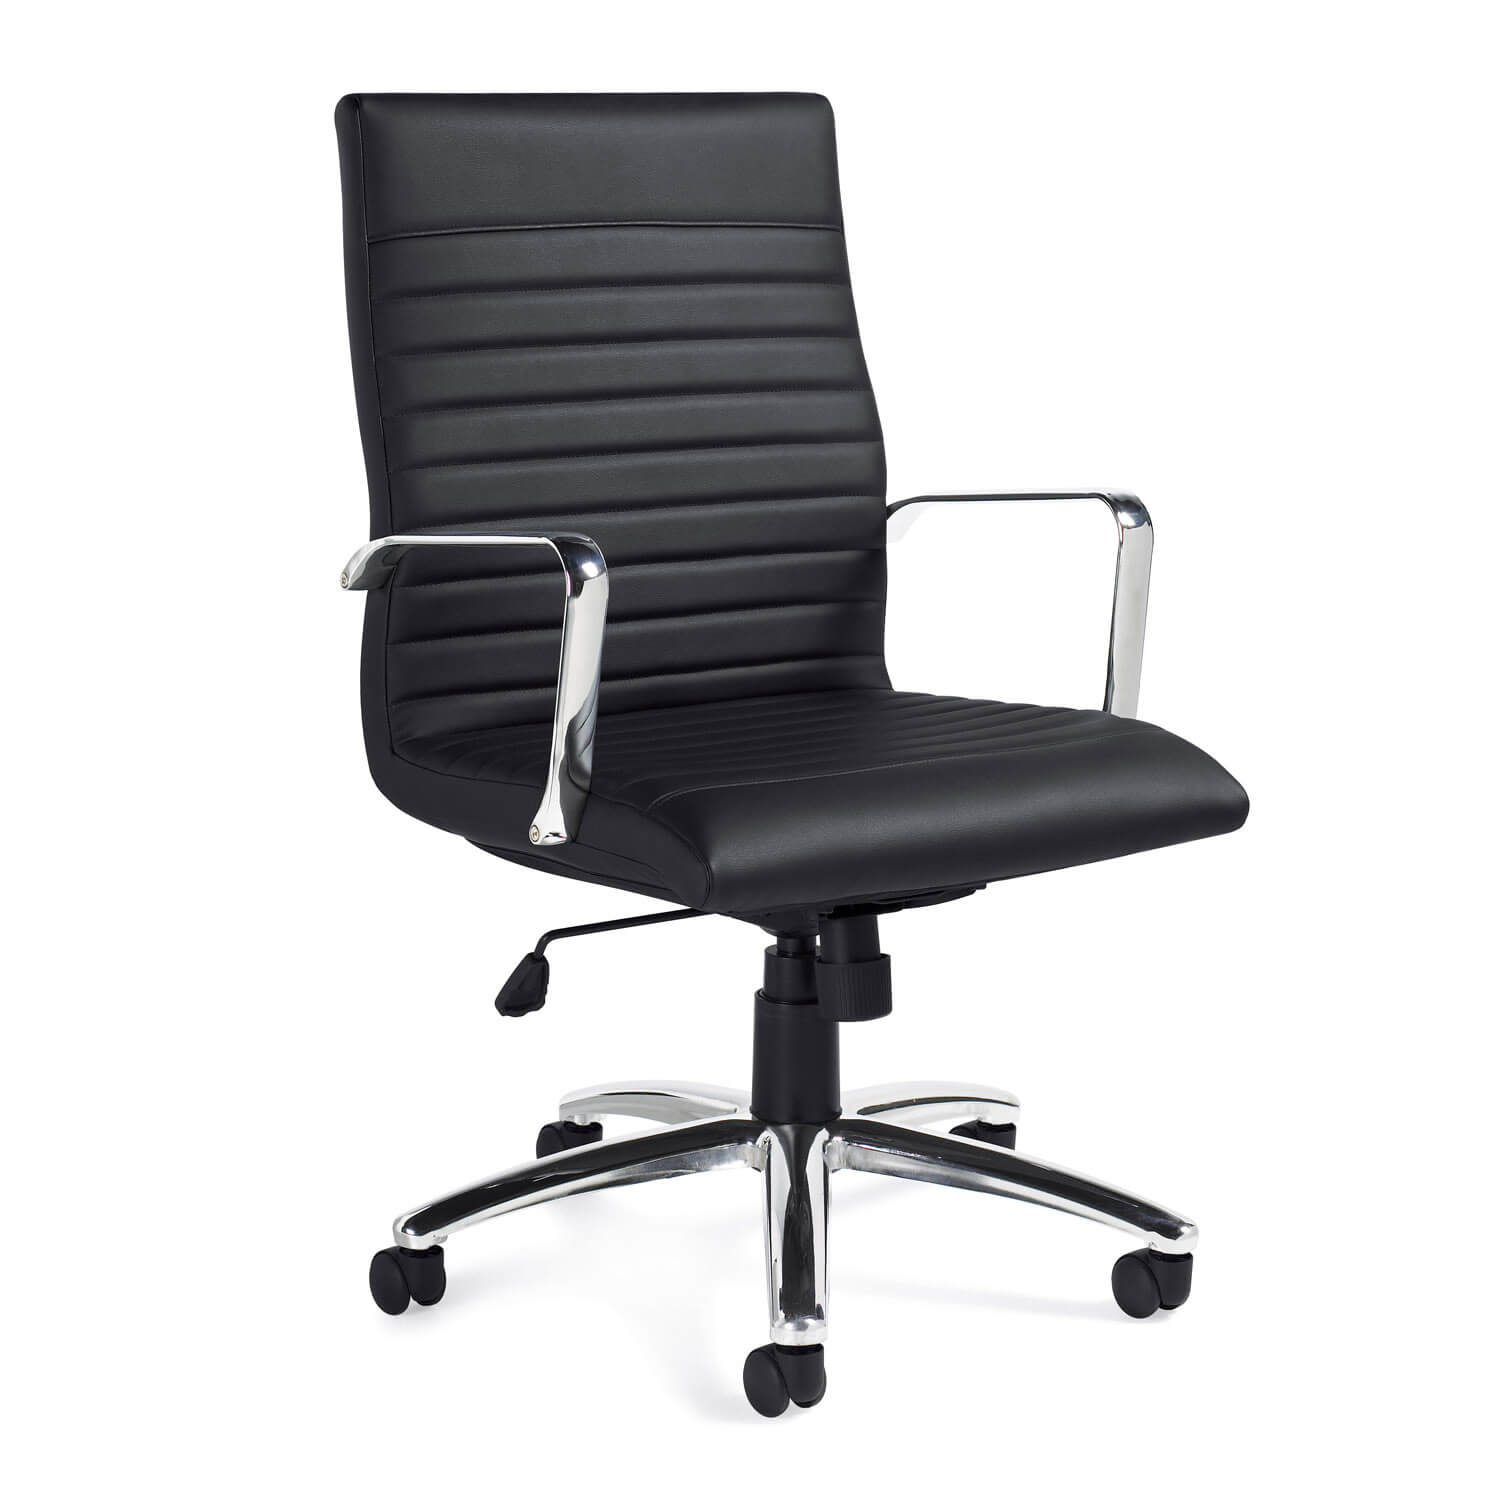 Patterson Luxhide Executive Chair